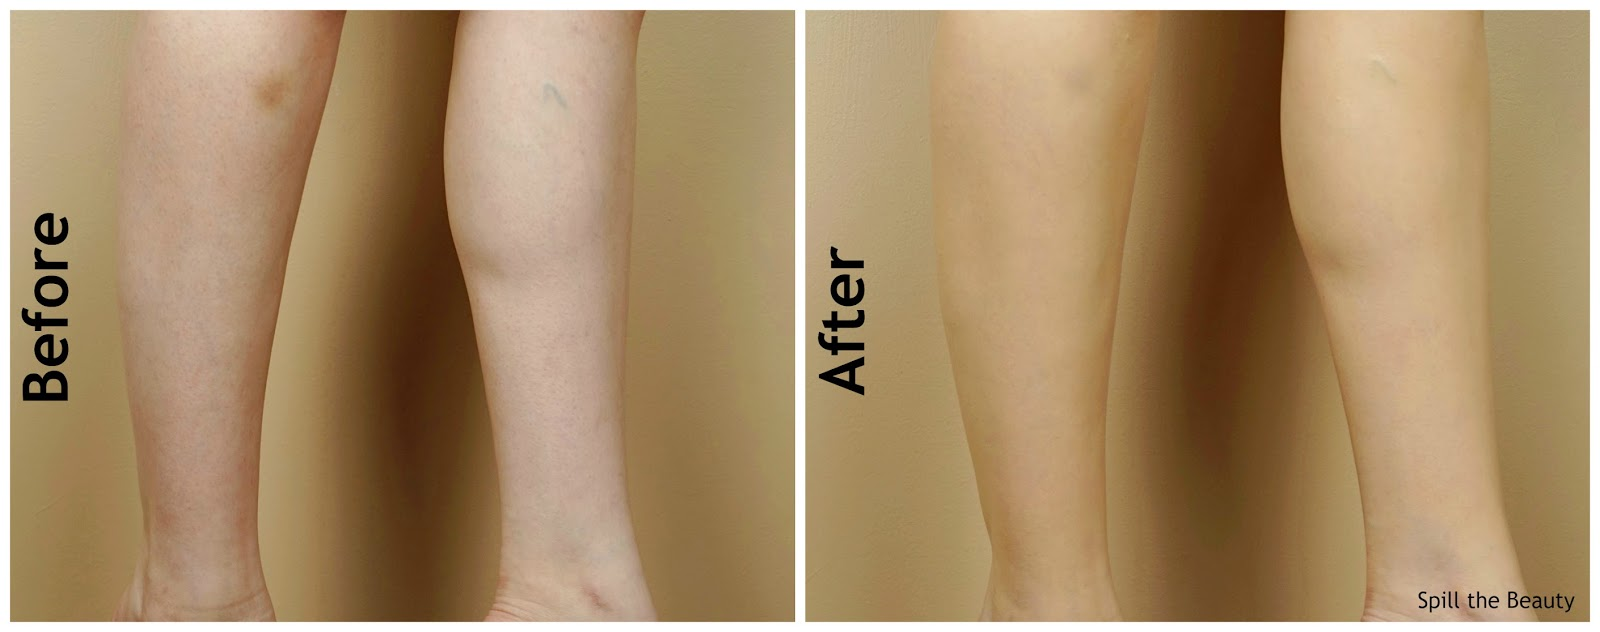 a322d1d88 dermablend leg and body makeup buildable liquid body foundation review  swatches before and after fair ivory ...